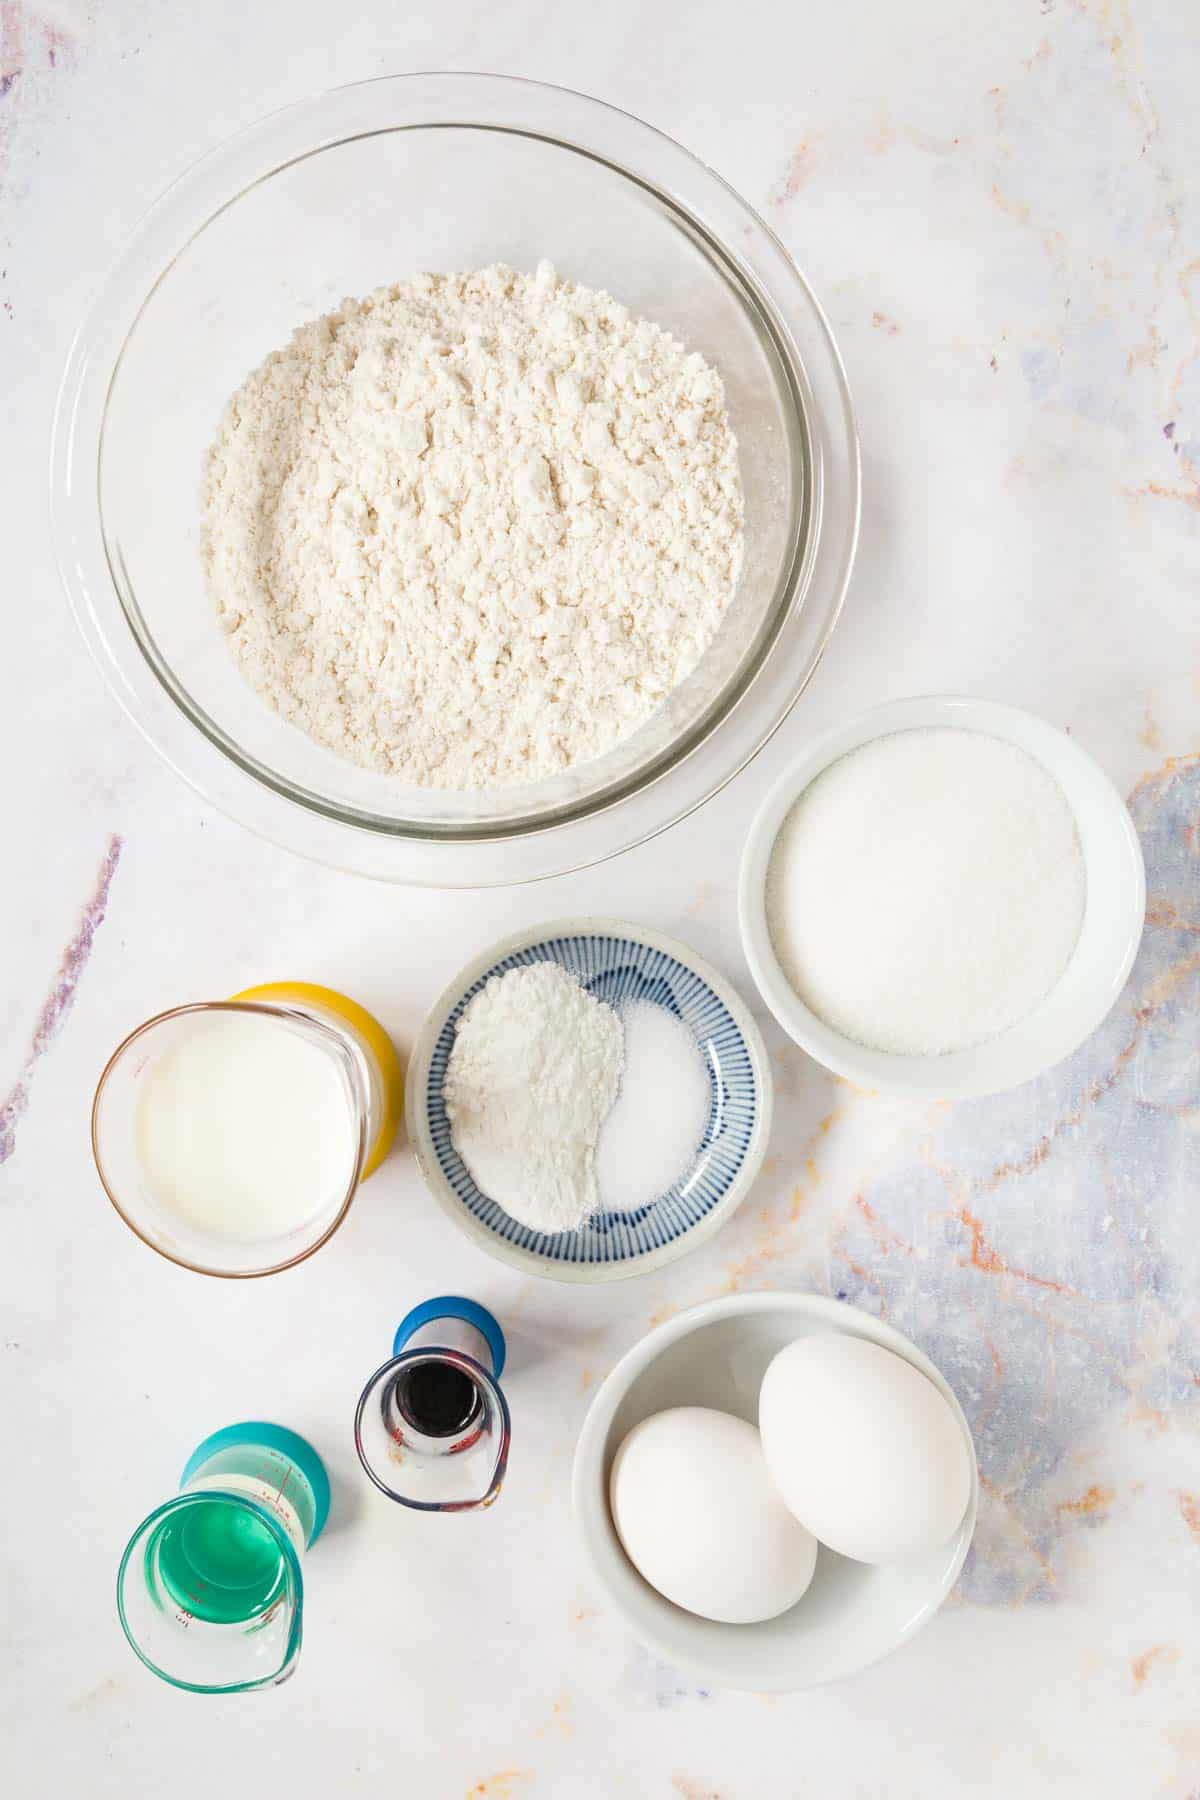 ingredients for gluten free new york crumb cake, including flour, vanilla, eggs and salt